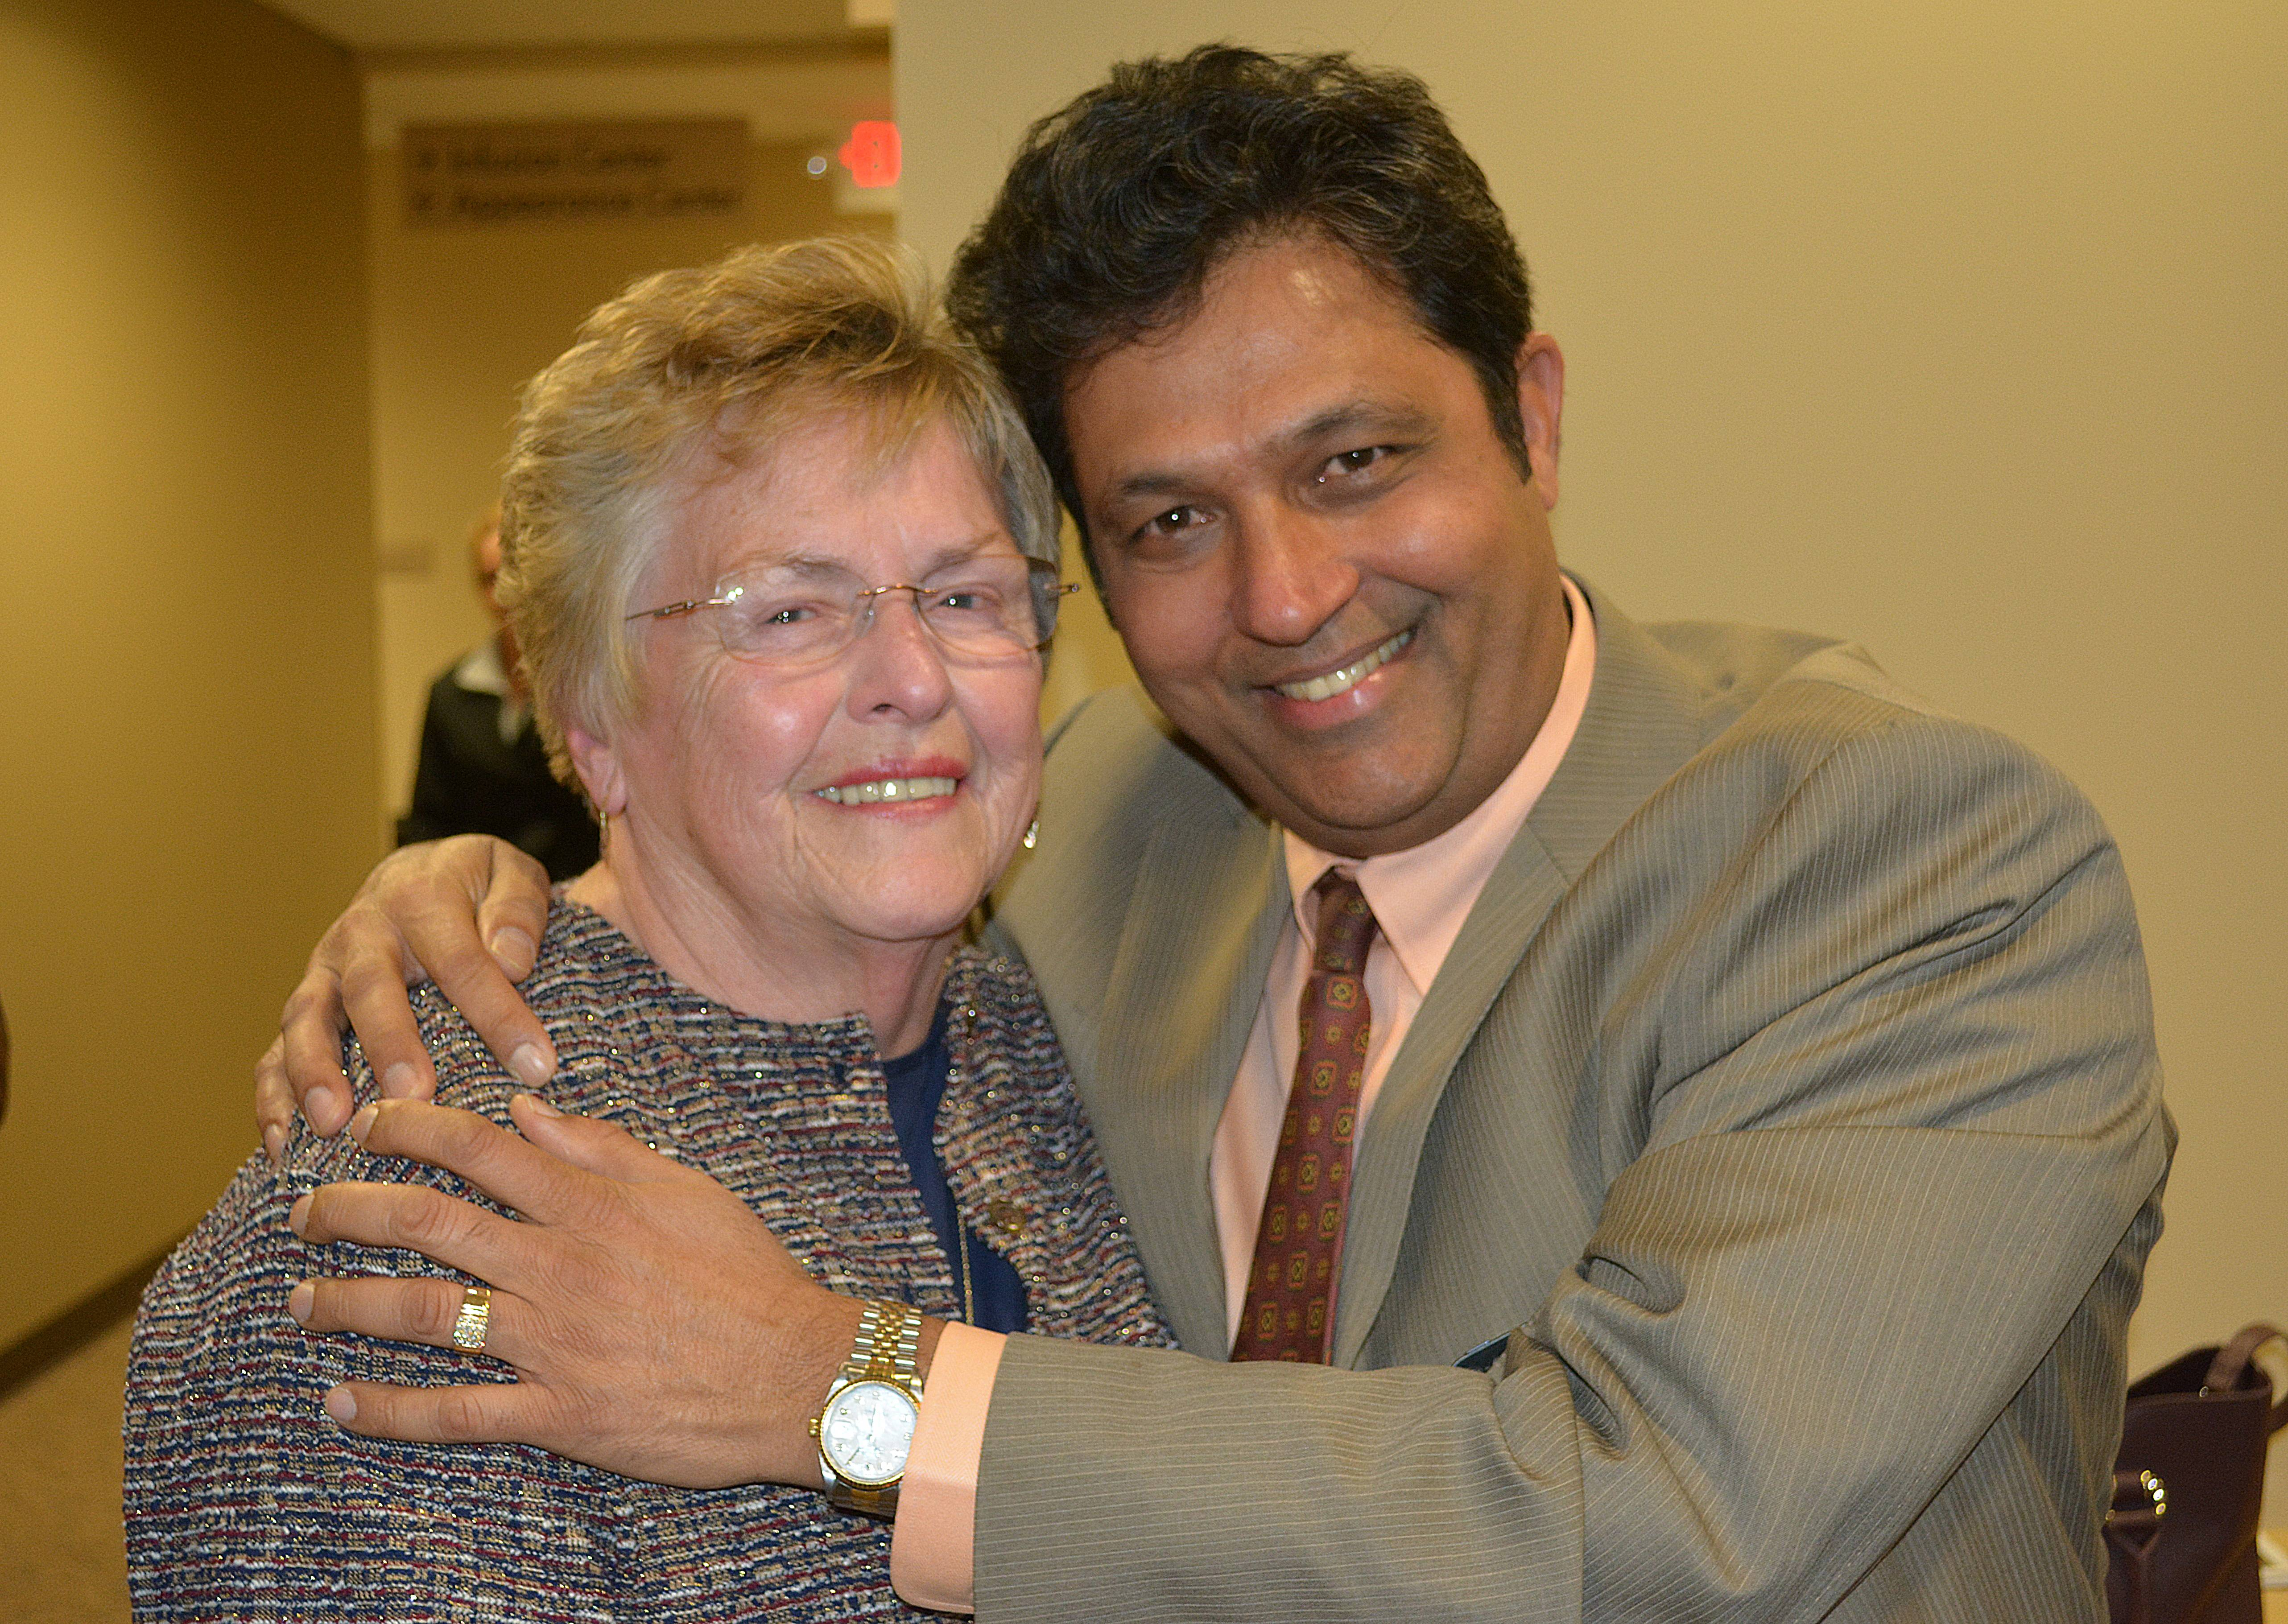 At the ribbon cutting, Vista Oncologist Dr. Nilesh Mehta reunited with Janice Hassett of Antioch, the first cancer patient he treated when he joined OHANI in 1992.